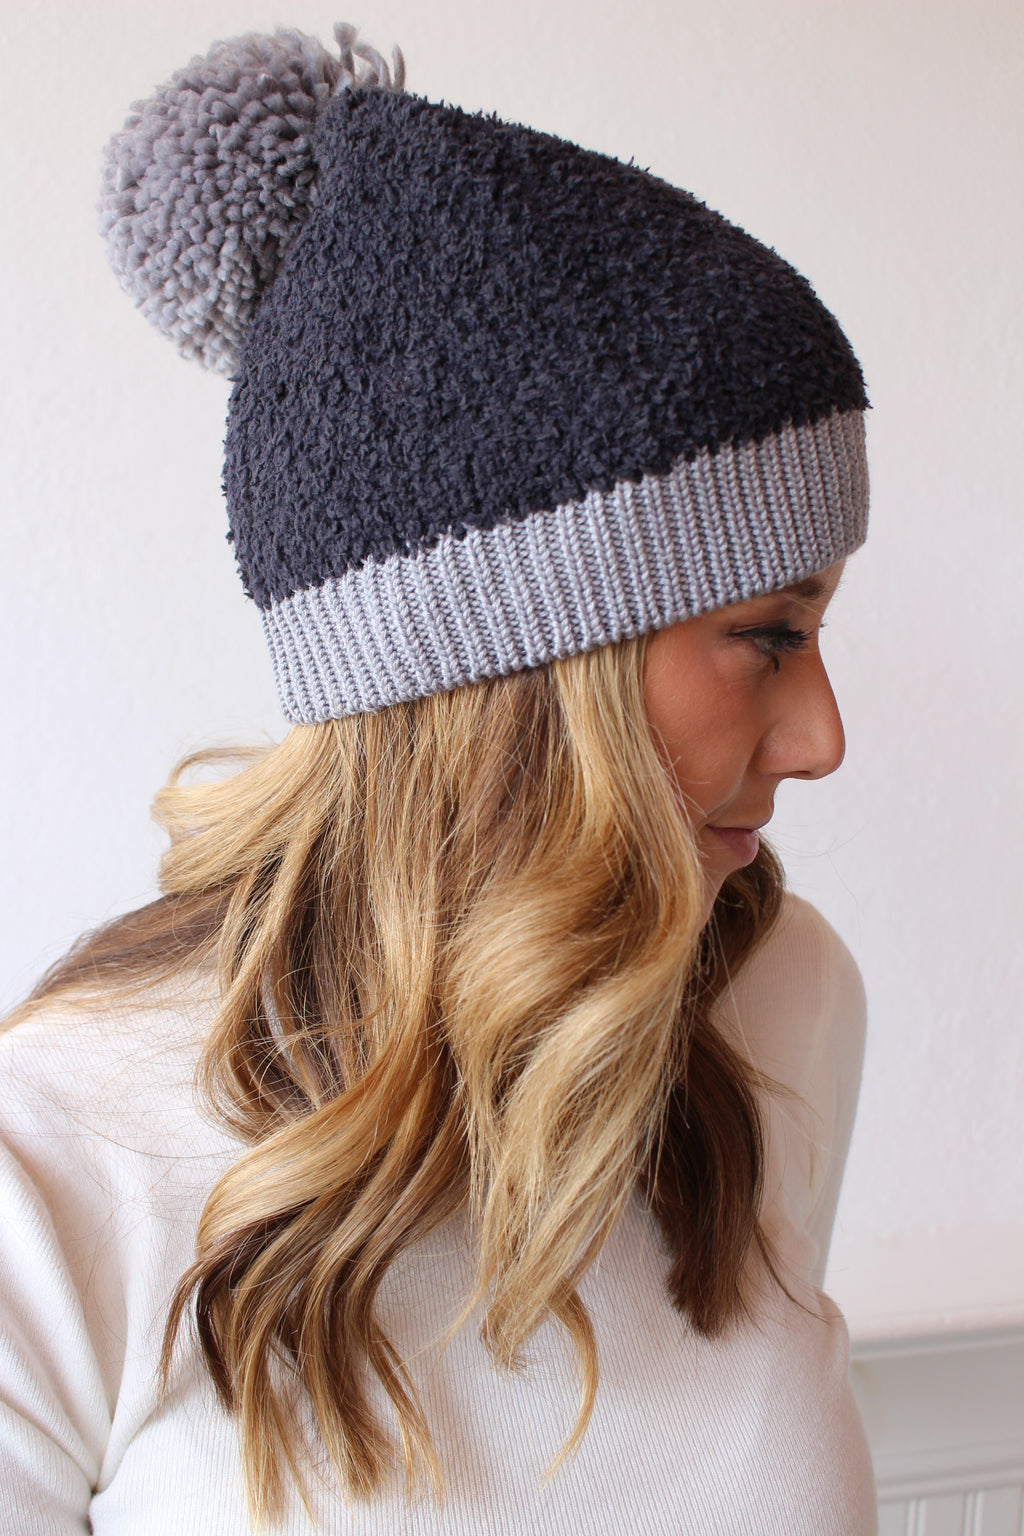 Seasons Changing Pom Beanie - Black/Grey